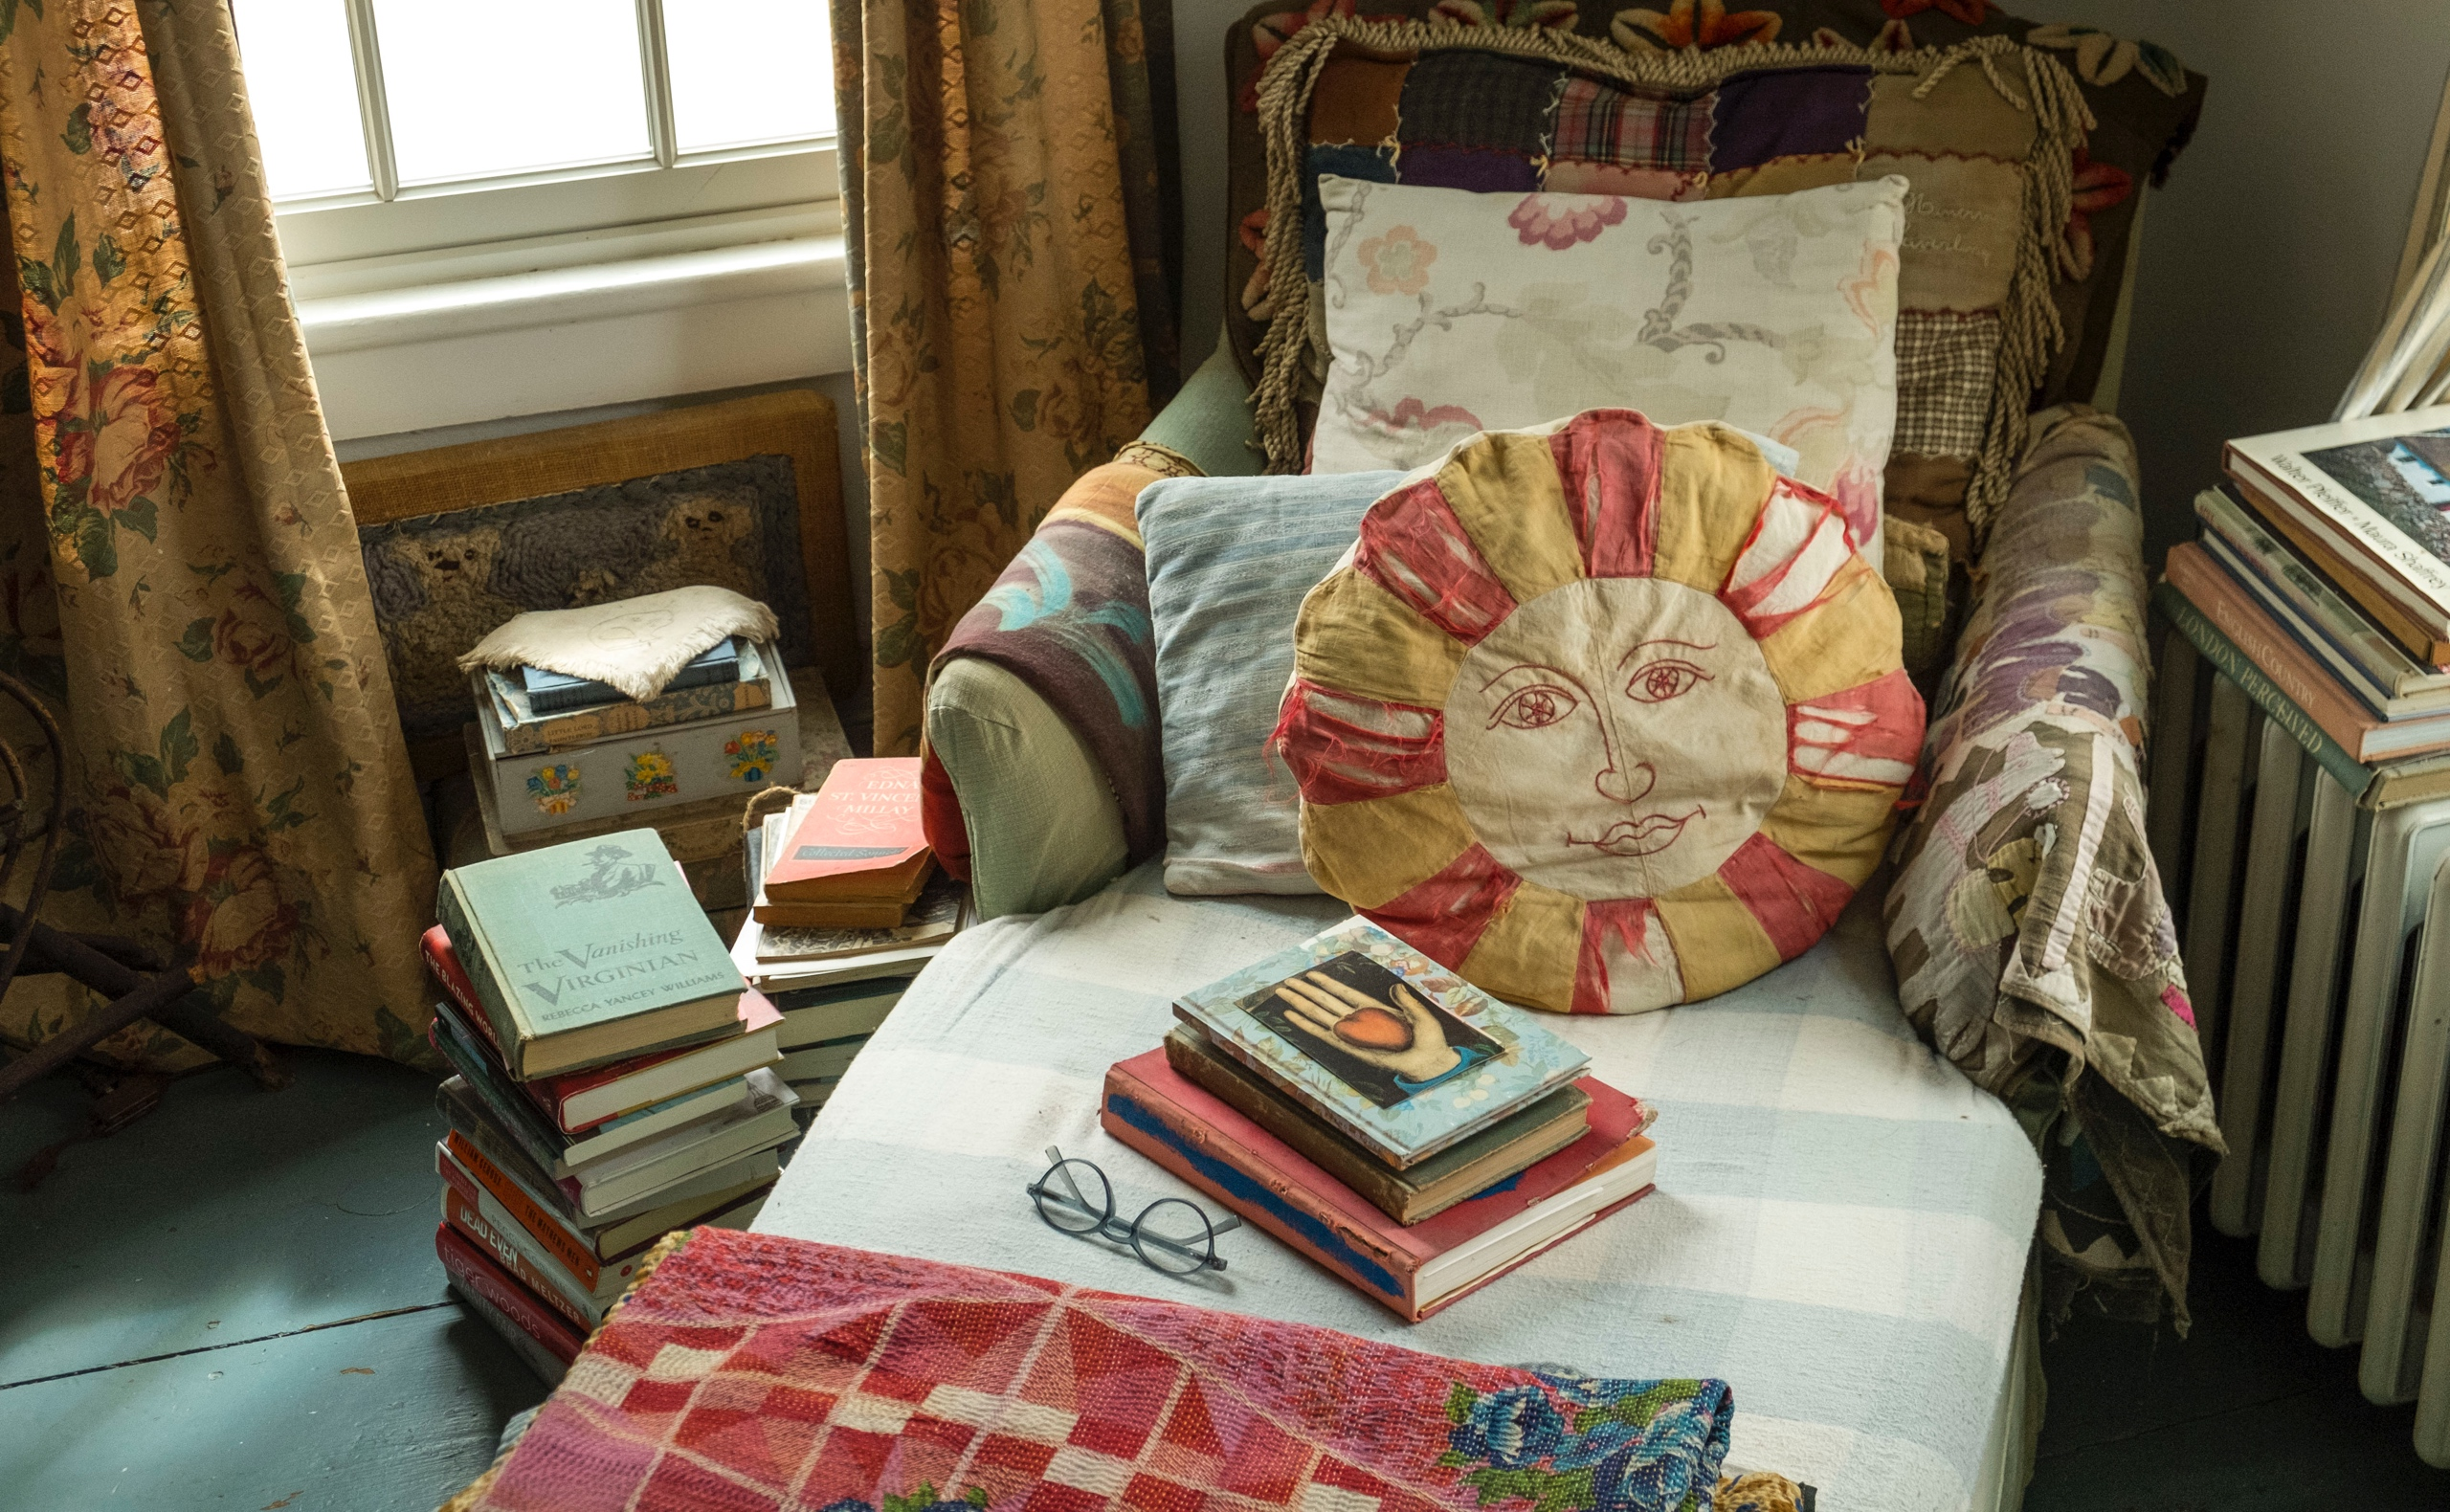 A cozy bedroom chaise surrounded by books and blanketed top-to-bottom with sun-faded coverlets, quilts, and textiles, softened with a collection of eclectic vintage pillows